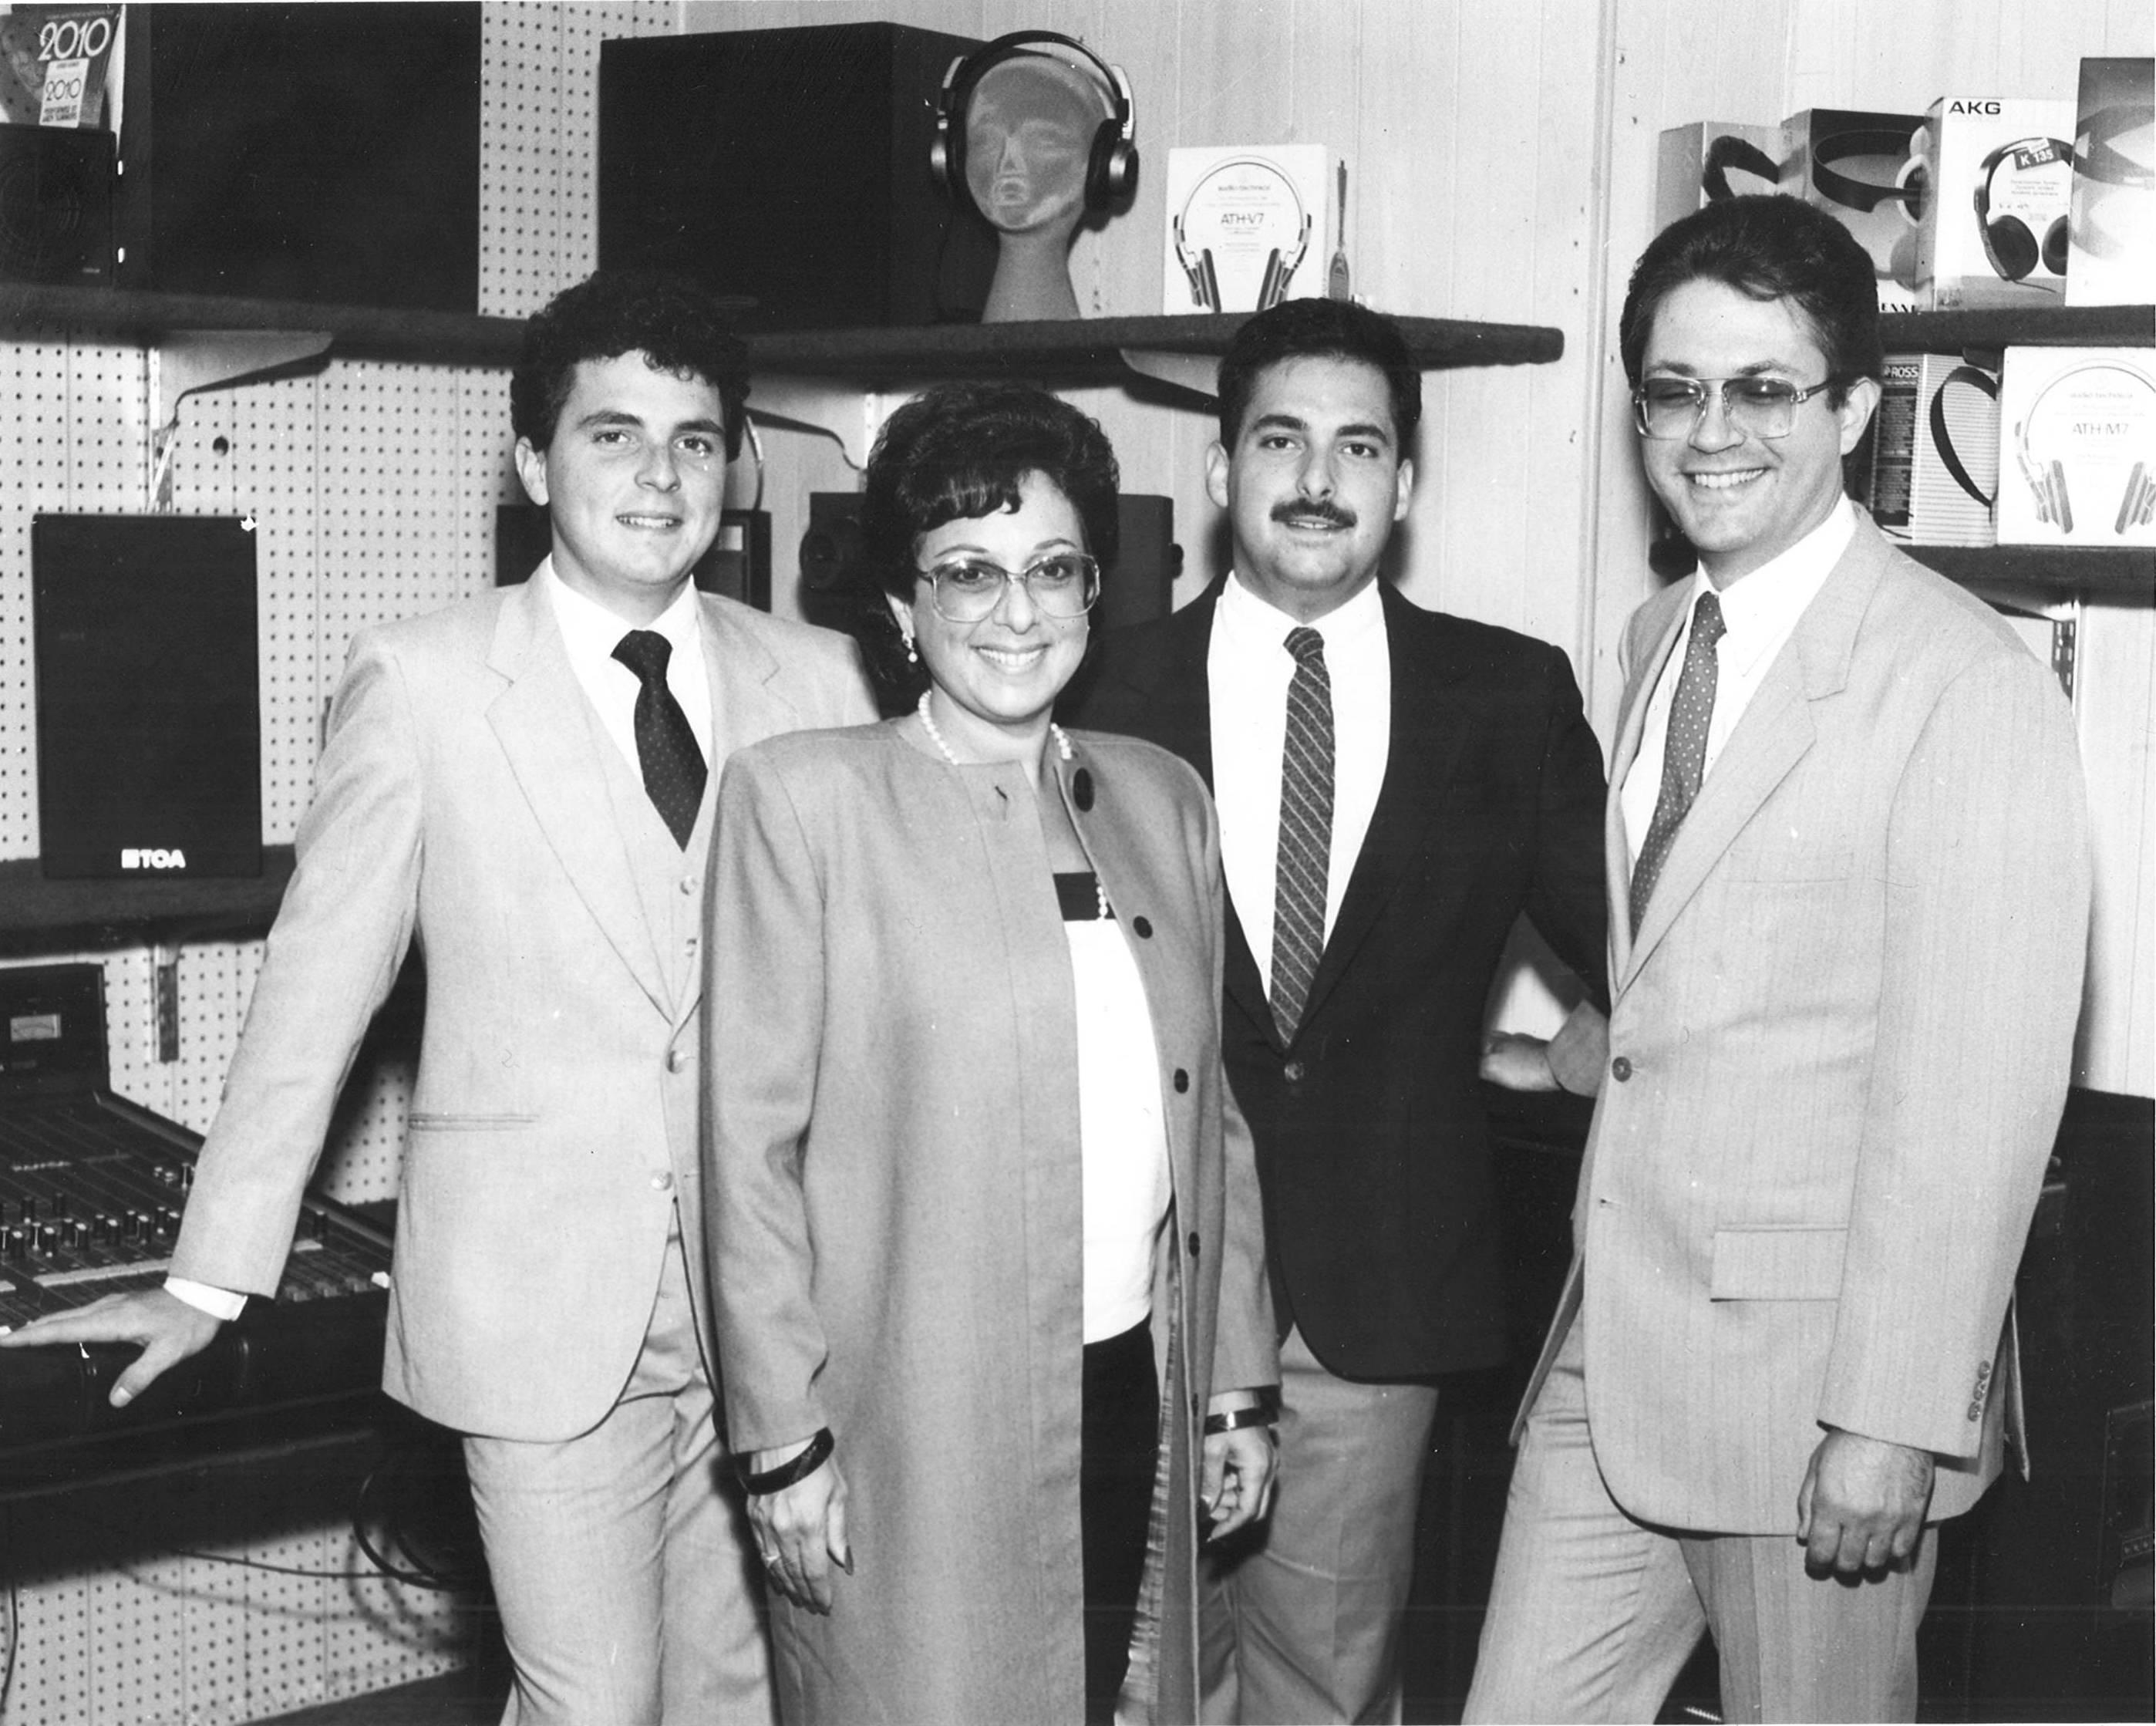 Susan and Jonathan with their sons Steven Cohan (left) and Jeff Lipp, in the Full Compass office, 1981